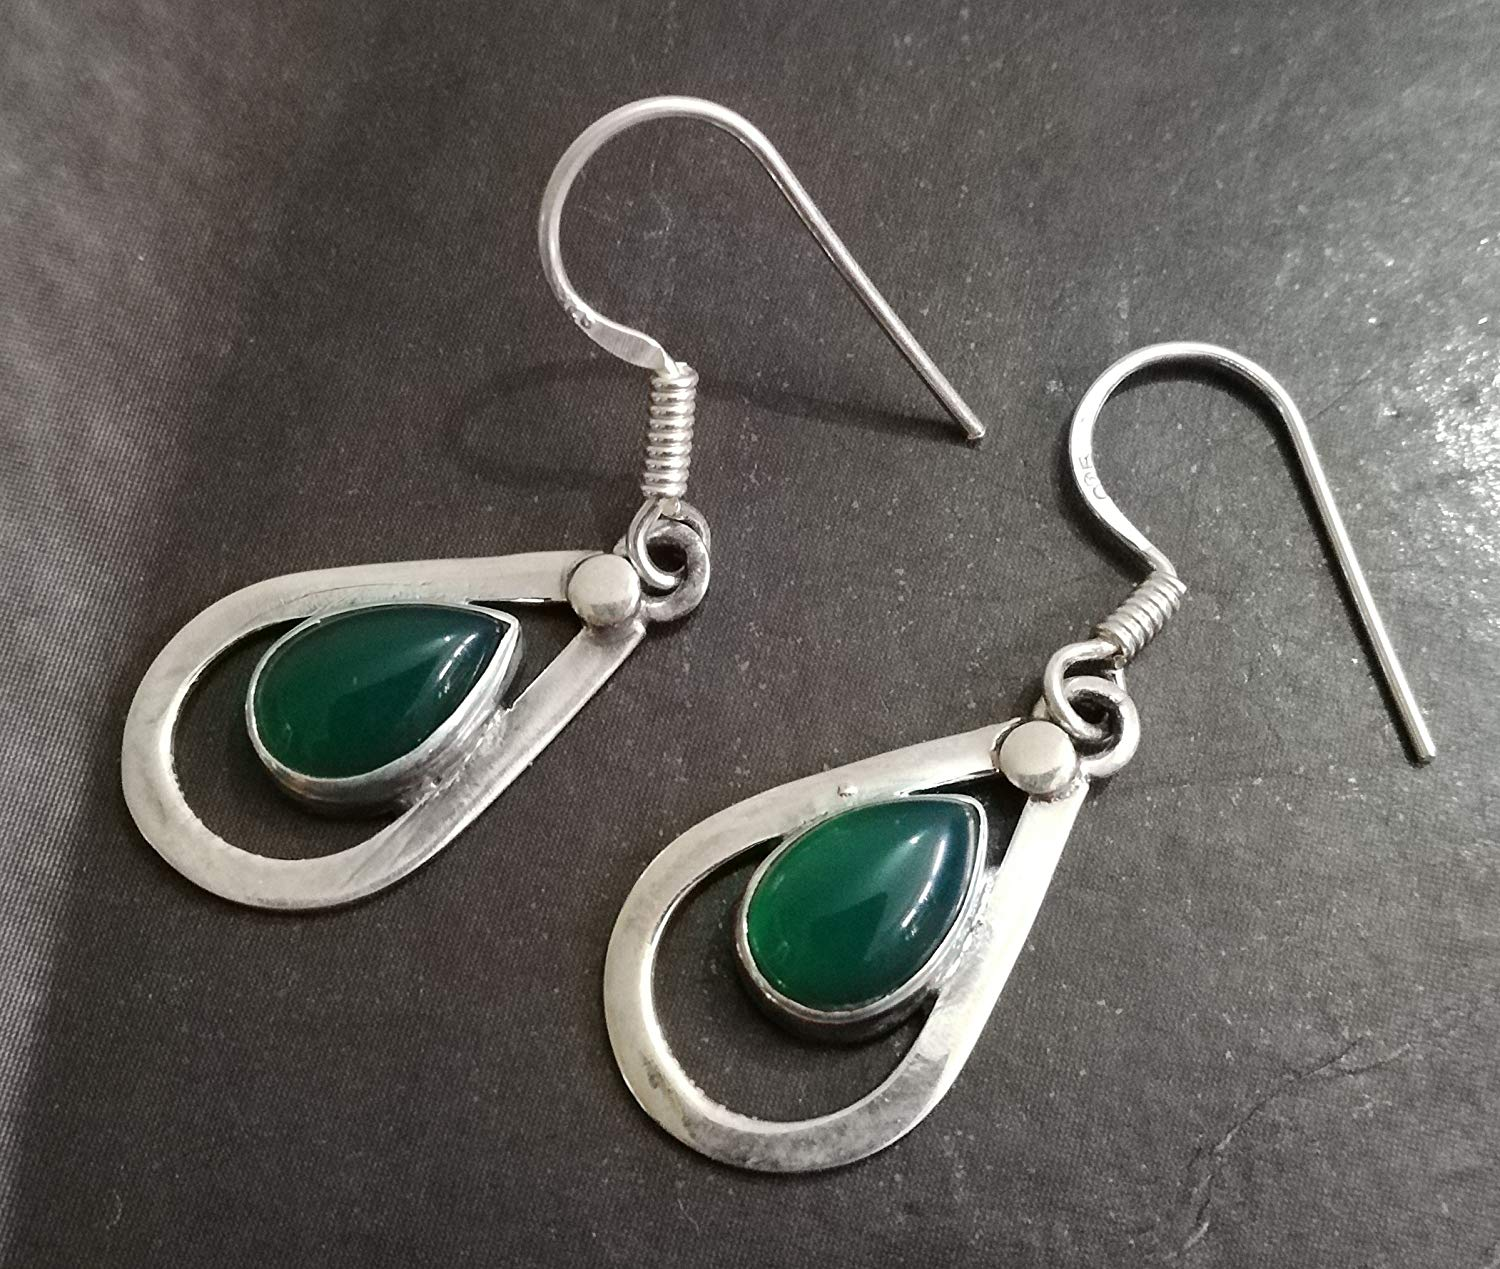 b3a2bcdcc Get Quotations · Green Onyx Earrings, 925 Sterling Silver, 7th Anniversary  Jewelry, August Birthstone, Teardrop